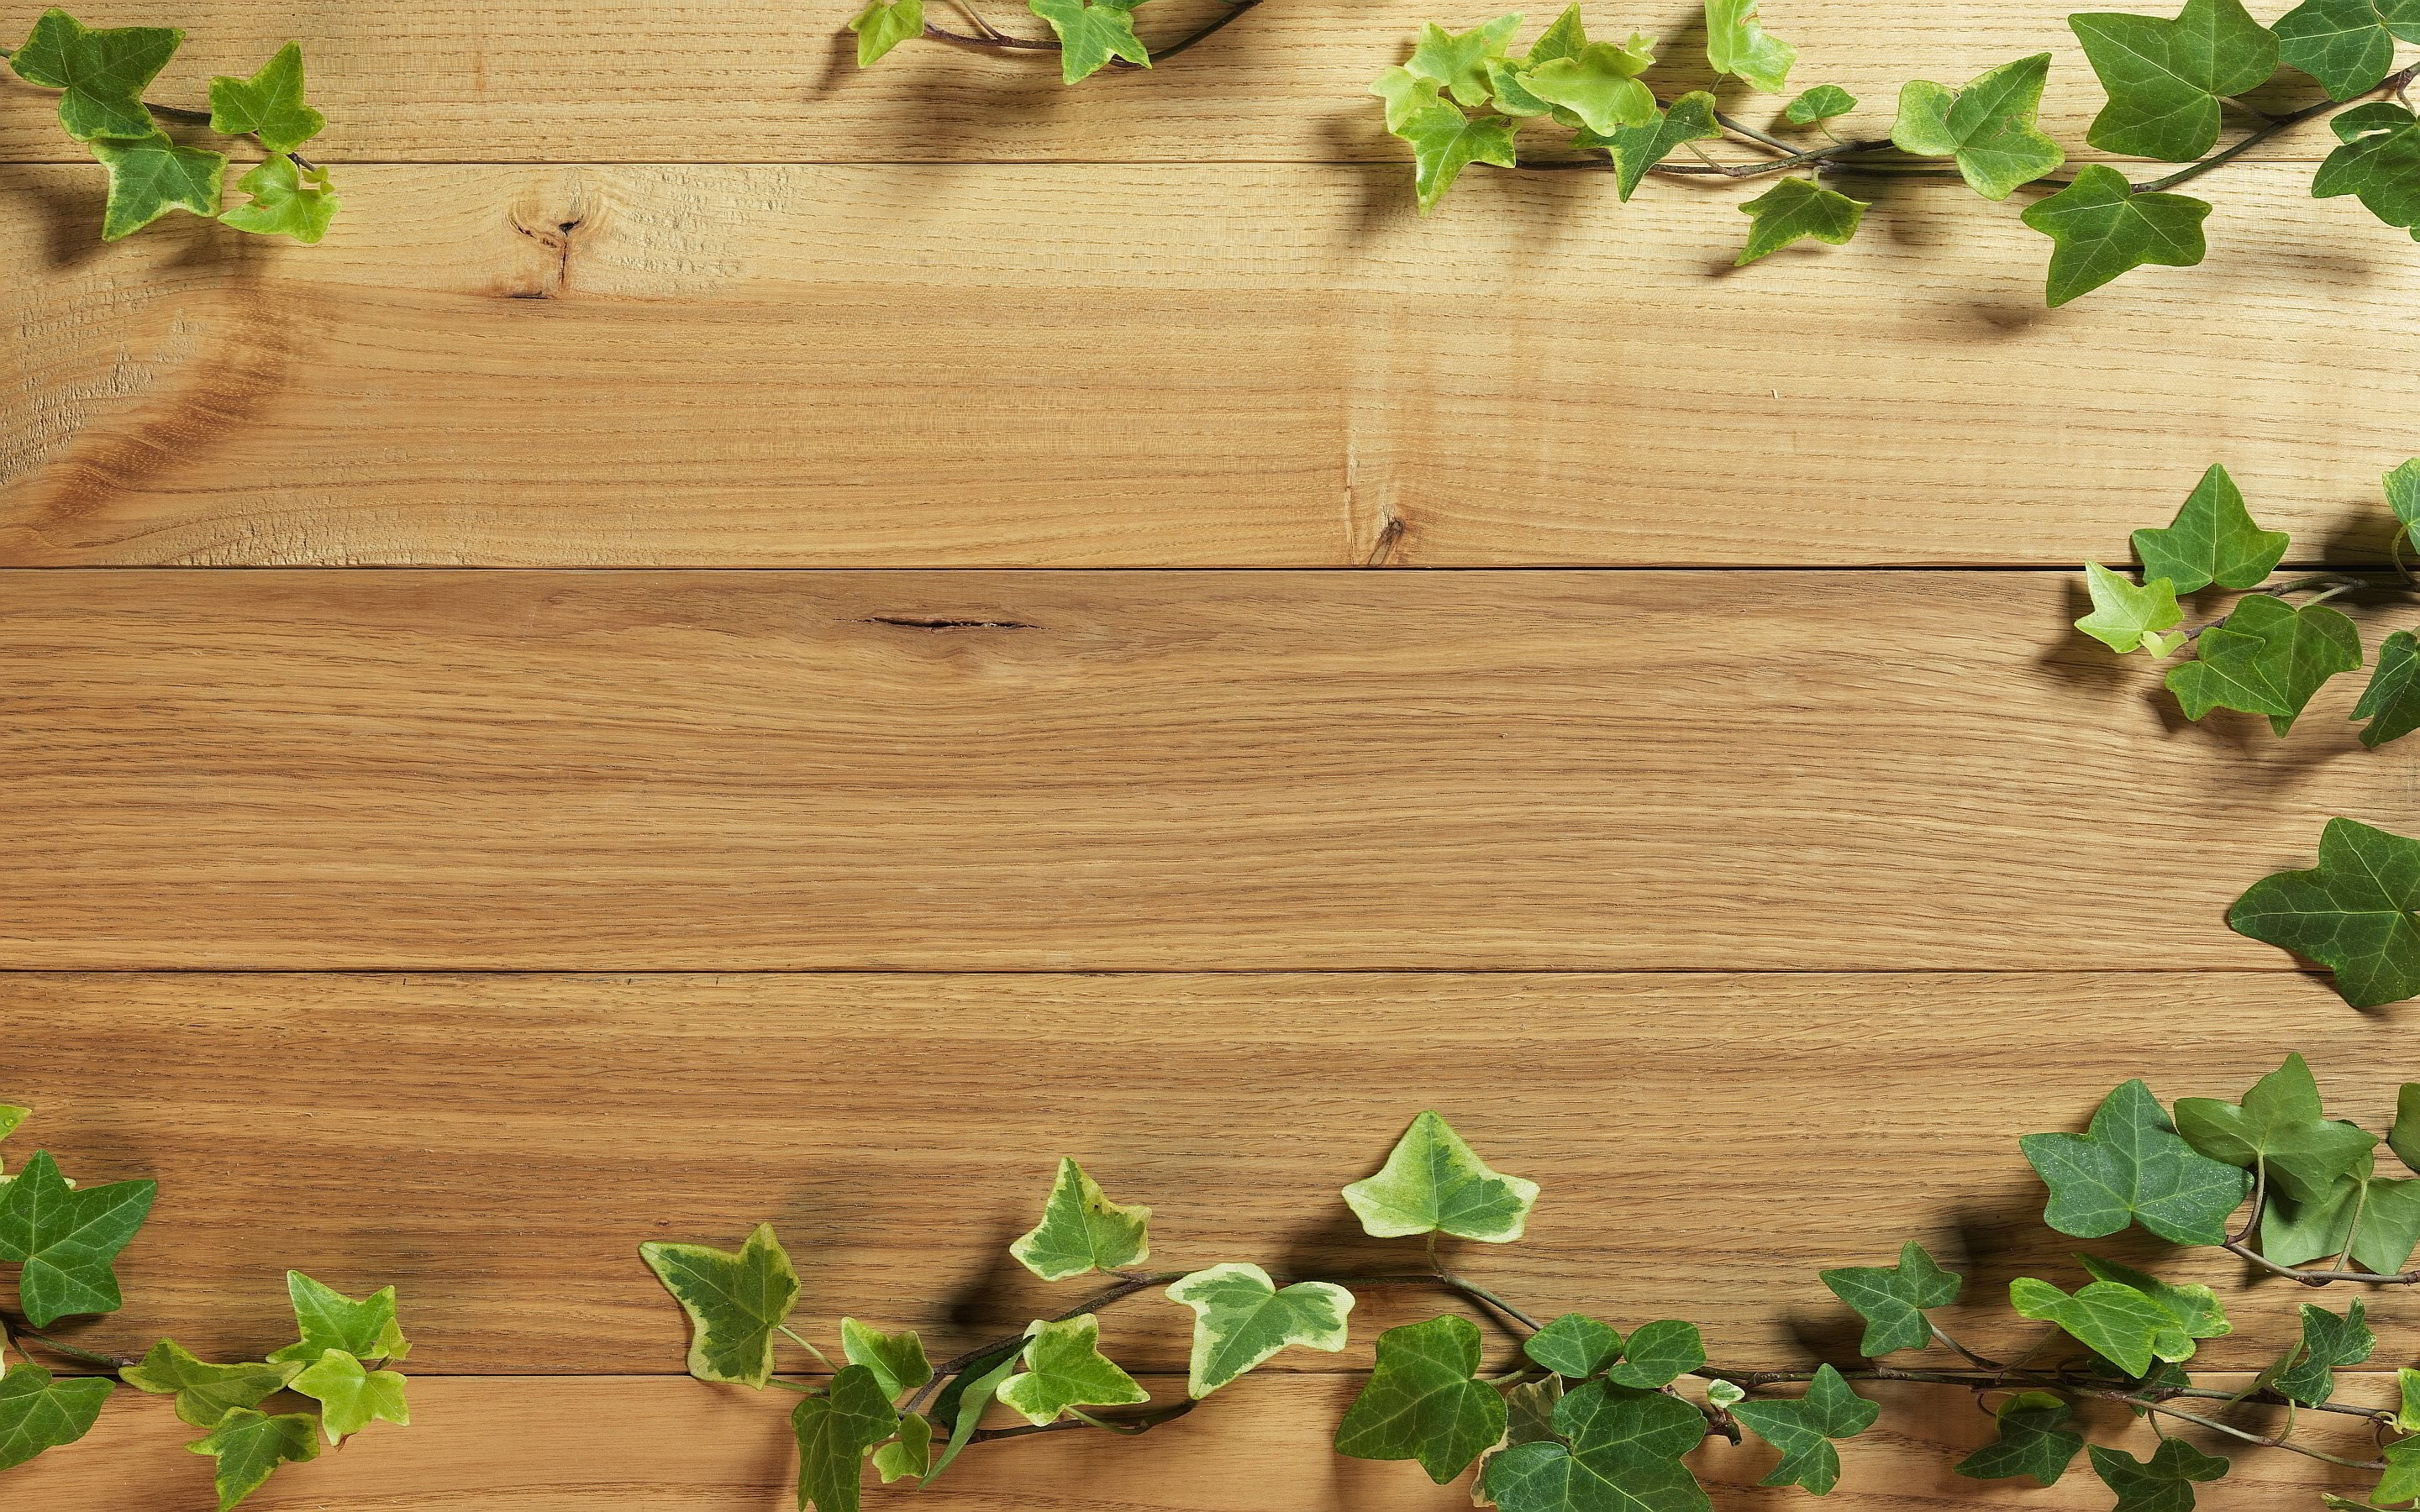 Wood background image ·① Download free wallpapers for ...